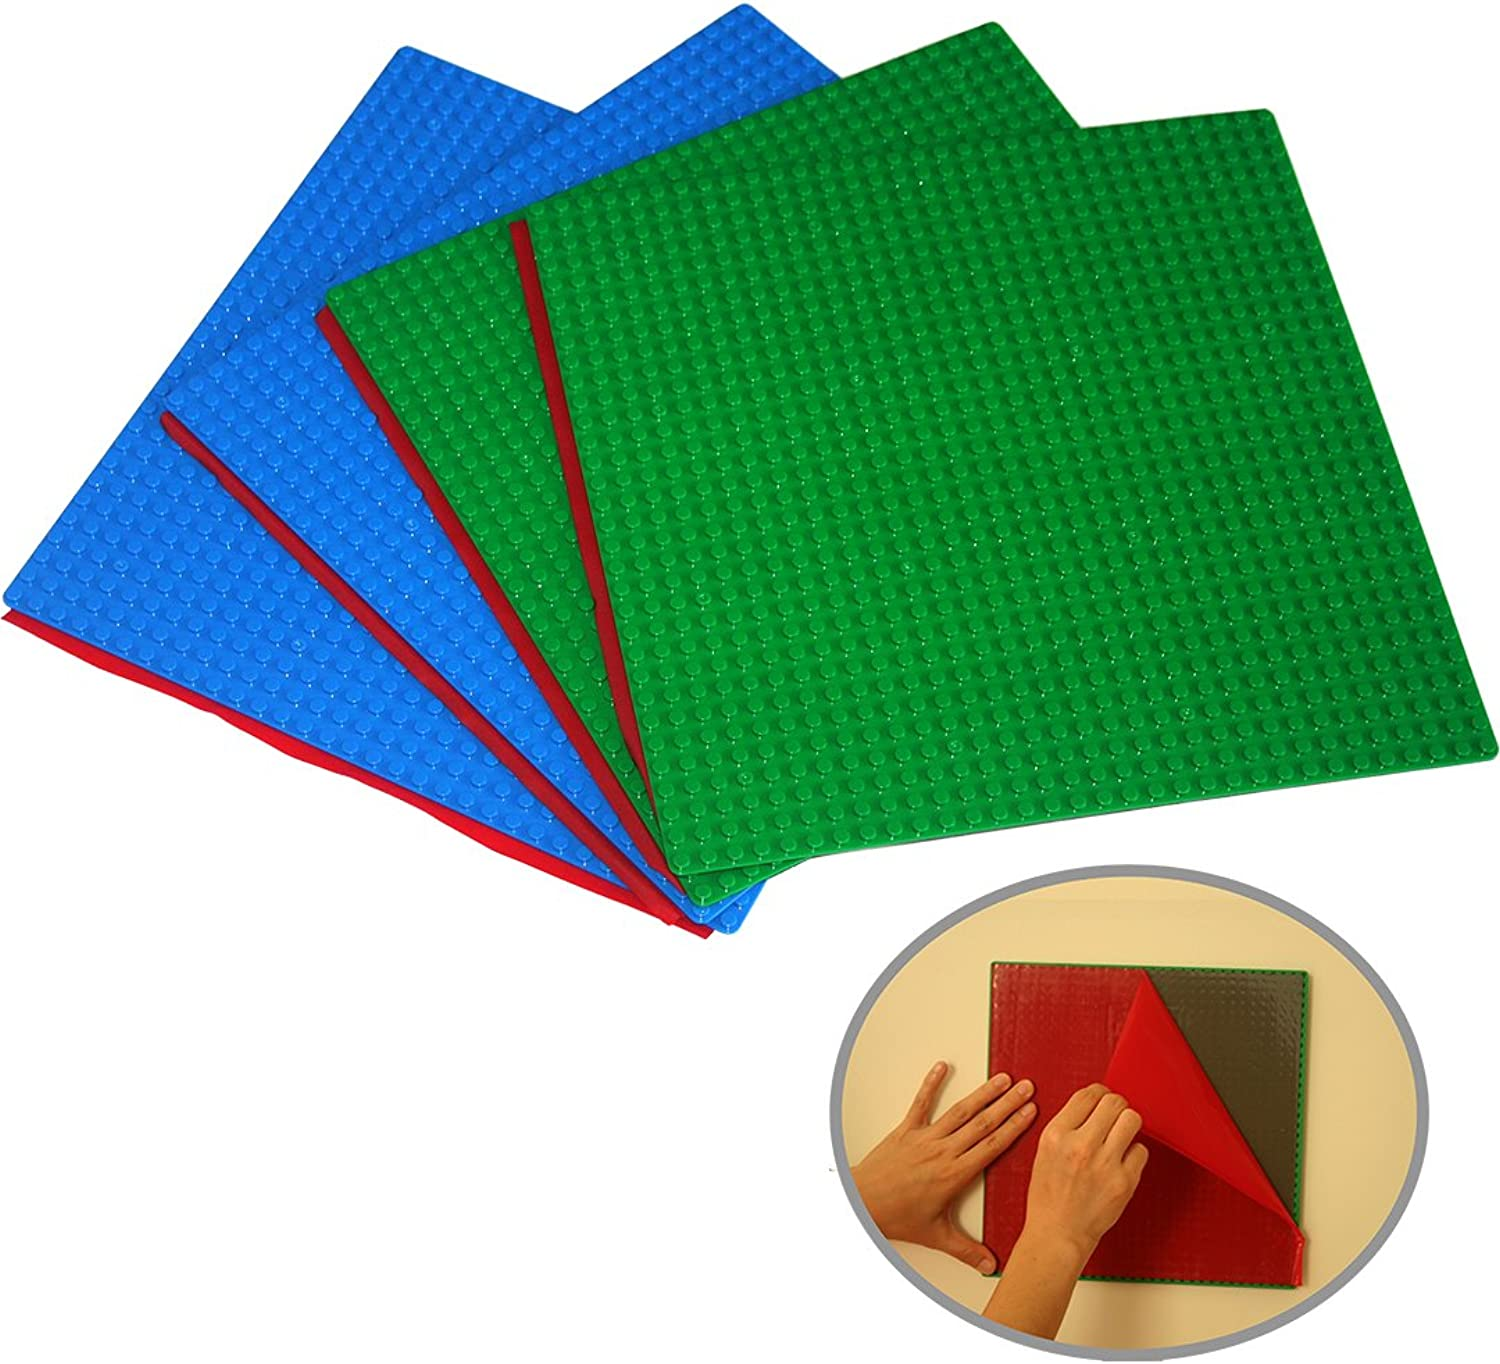 PeelandStick Self Adhesive Brick Building Base Plates  4 Pack (10 x10 ) Green+bluee baseplate  Fastest and Easiest DIY Play Table or Wall (2 Green +2 bluee Self Adhesive)